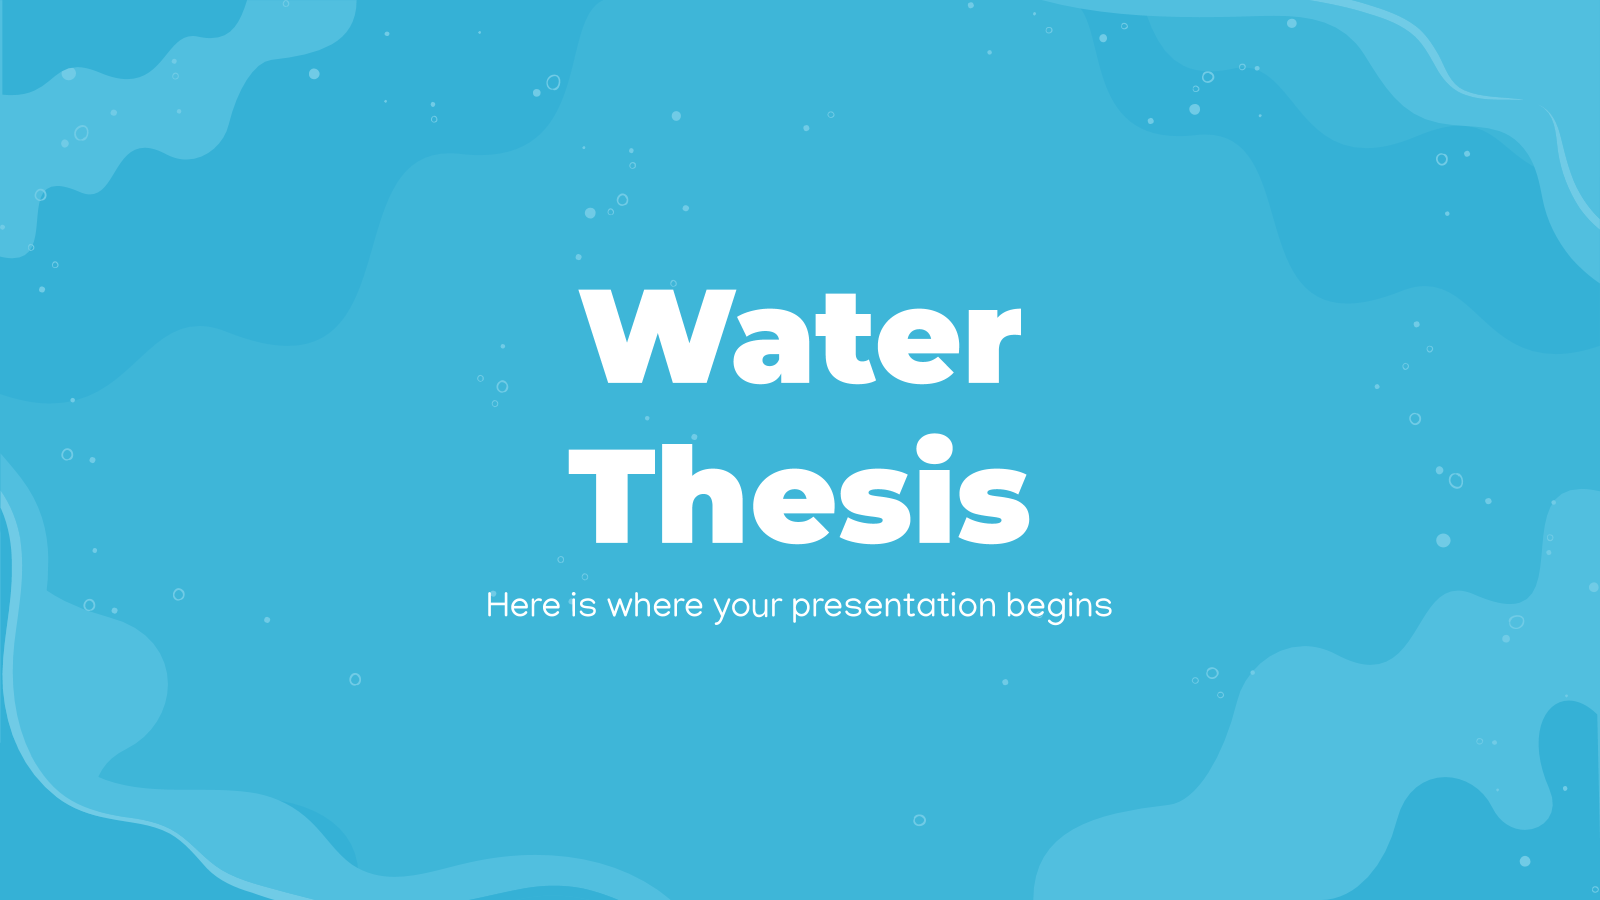 Water Thesis presentation template